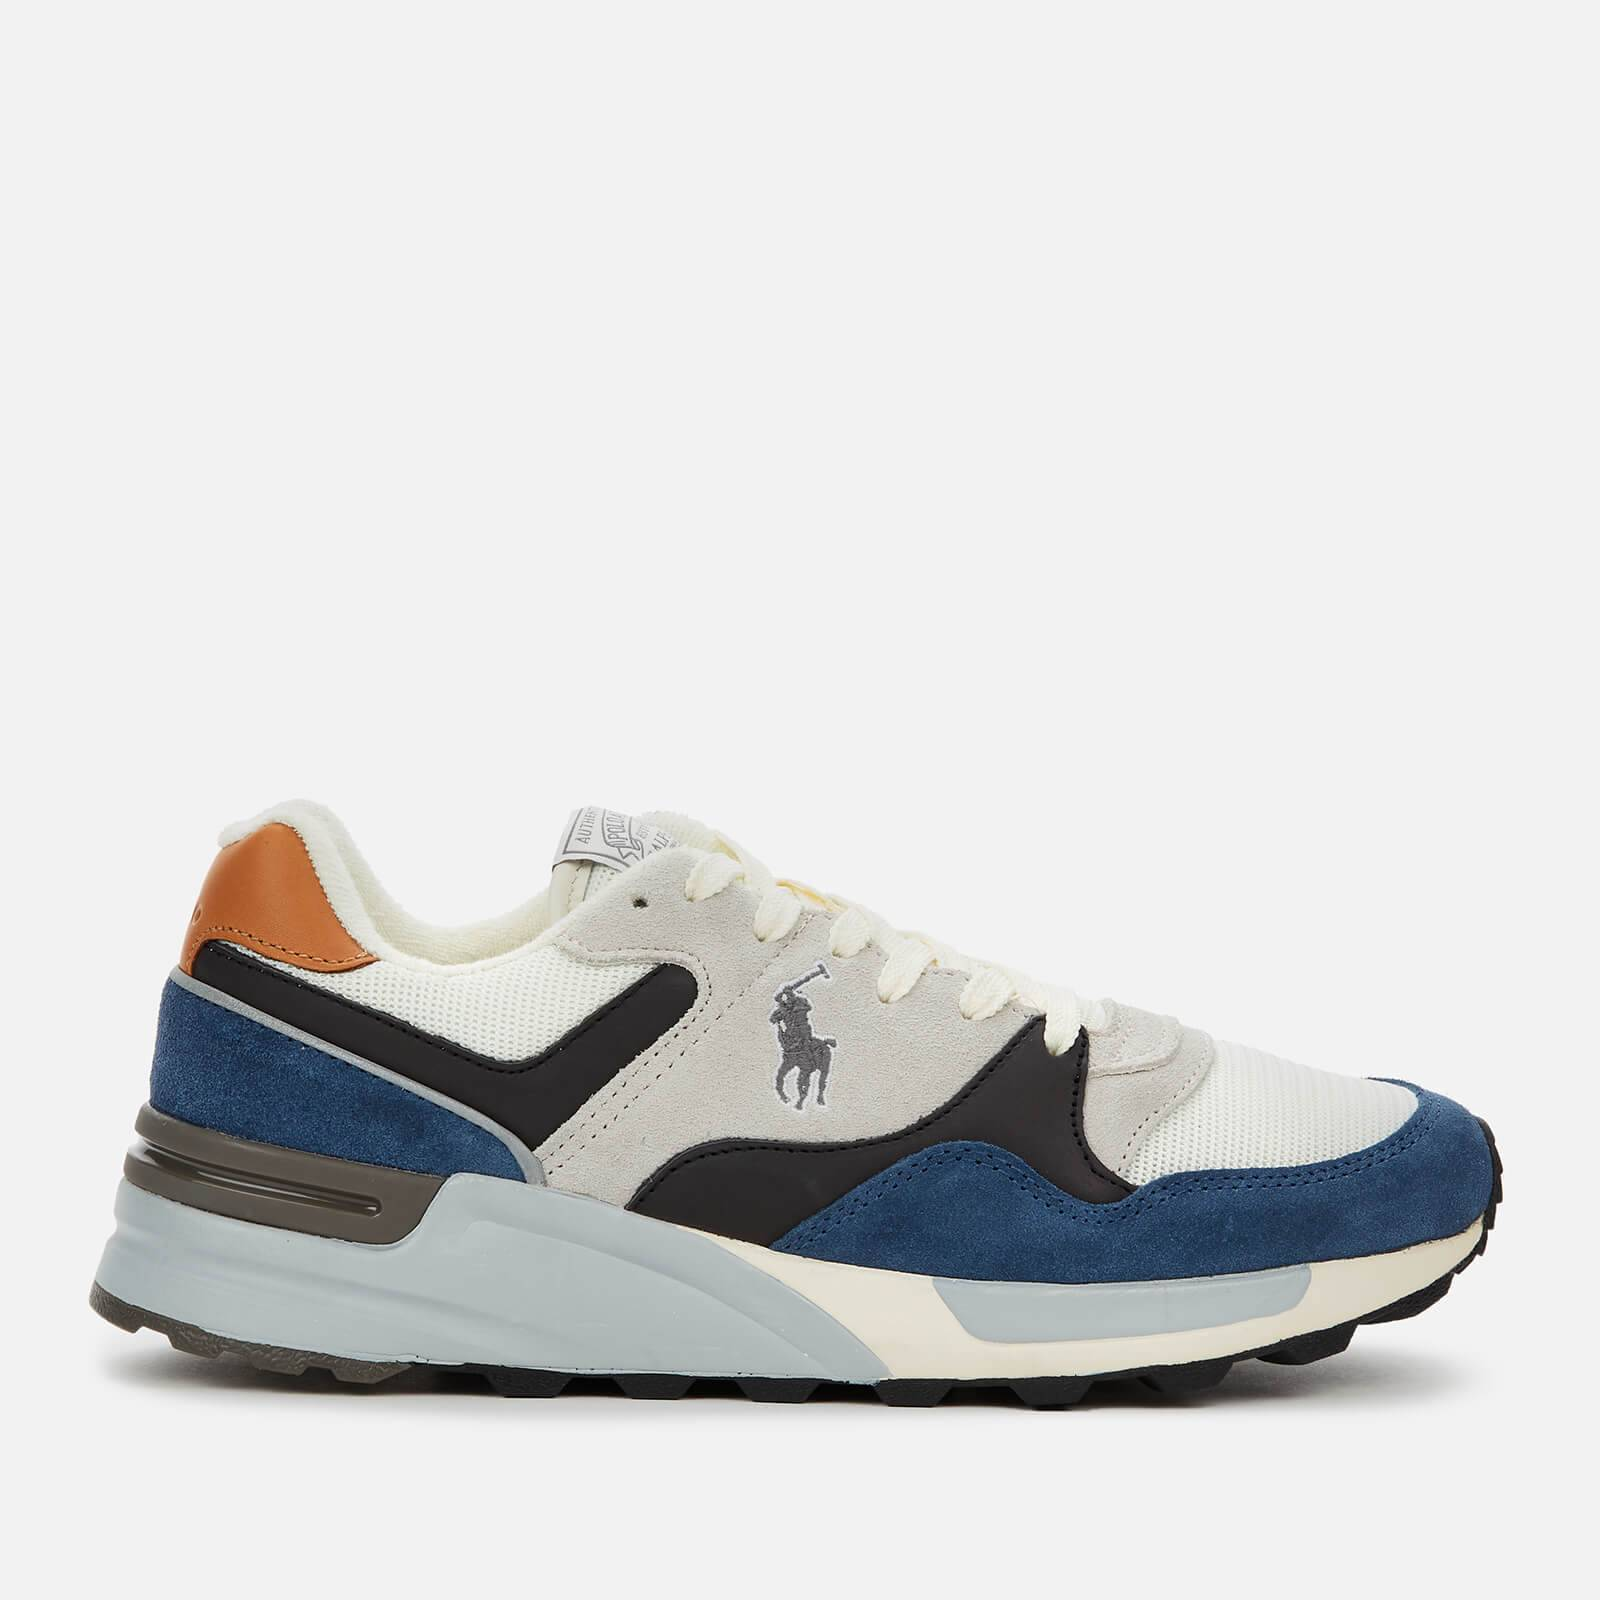 Ralph Lauren Polo Ralph Lauren Men's Trackstar Pony Suede/Leather/Mesh Running Style Trainers - Vintage Indigo/Skyline - UK 7